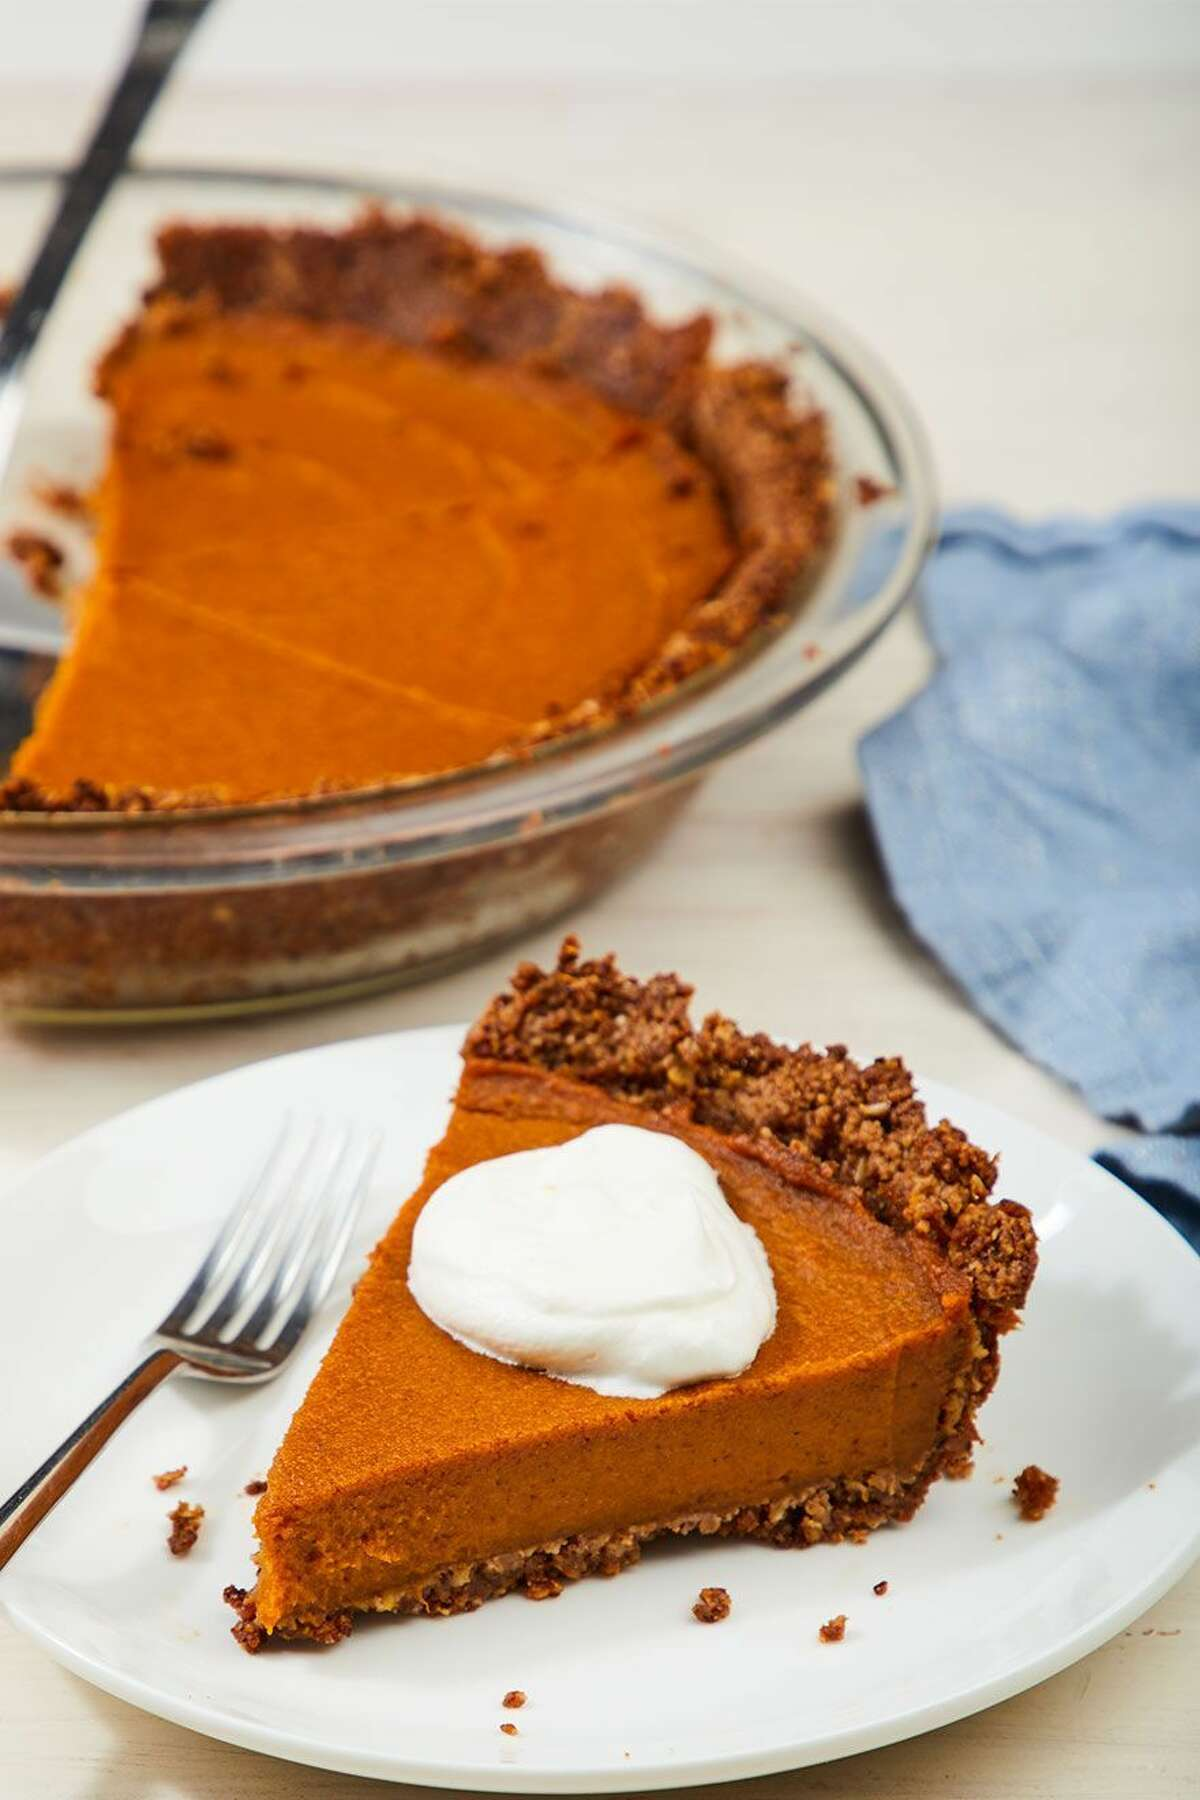 While Chef Renee Erickson's Sea Creatures restaurant group is joining forces to dish out a mean Thanksgiving collaboration of Mary's organic turkey, Shirlee's cranberry sauce with orange peel and Bateau beef gravy, customers can also nab a decadent house-made pecan pie. Orders will be available for pick up from Nov. 23-25.